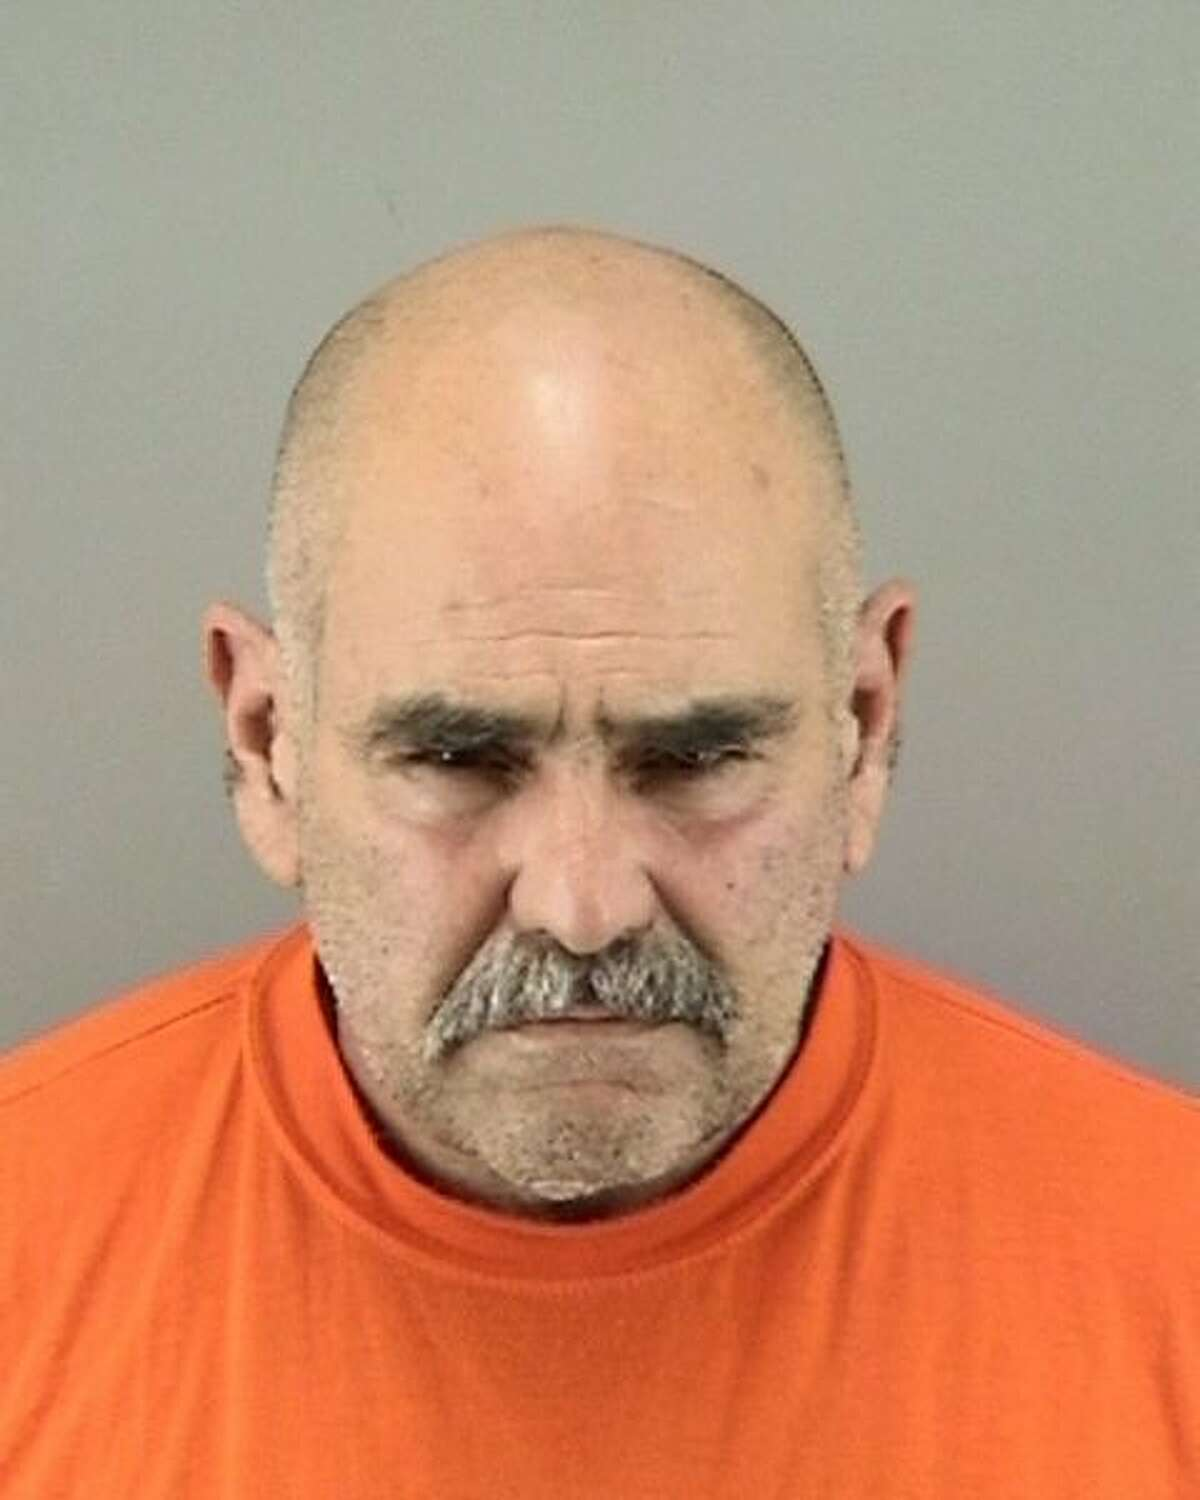 John Schenone, 62, of San Francisco was arrested on vandalism and hate-crime charges stemming from a rash of anti-Chinese graffiti in San Francisco's Portola and Bayview neighborhoods.